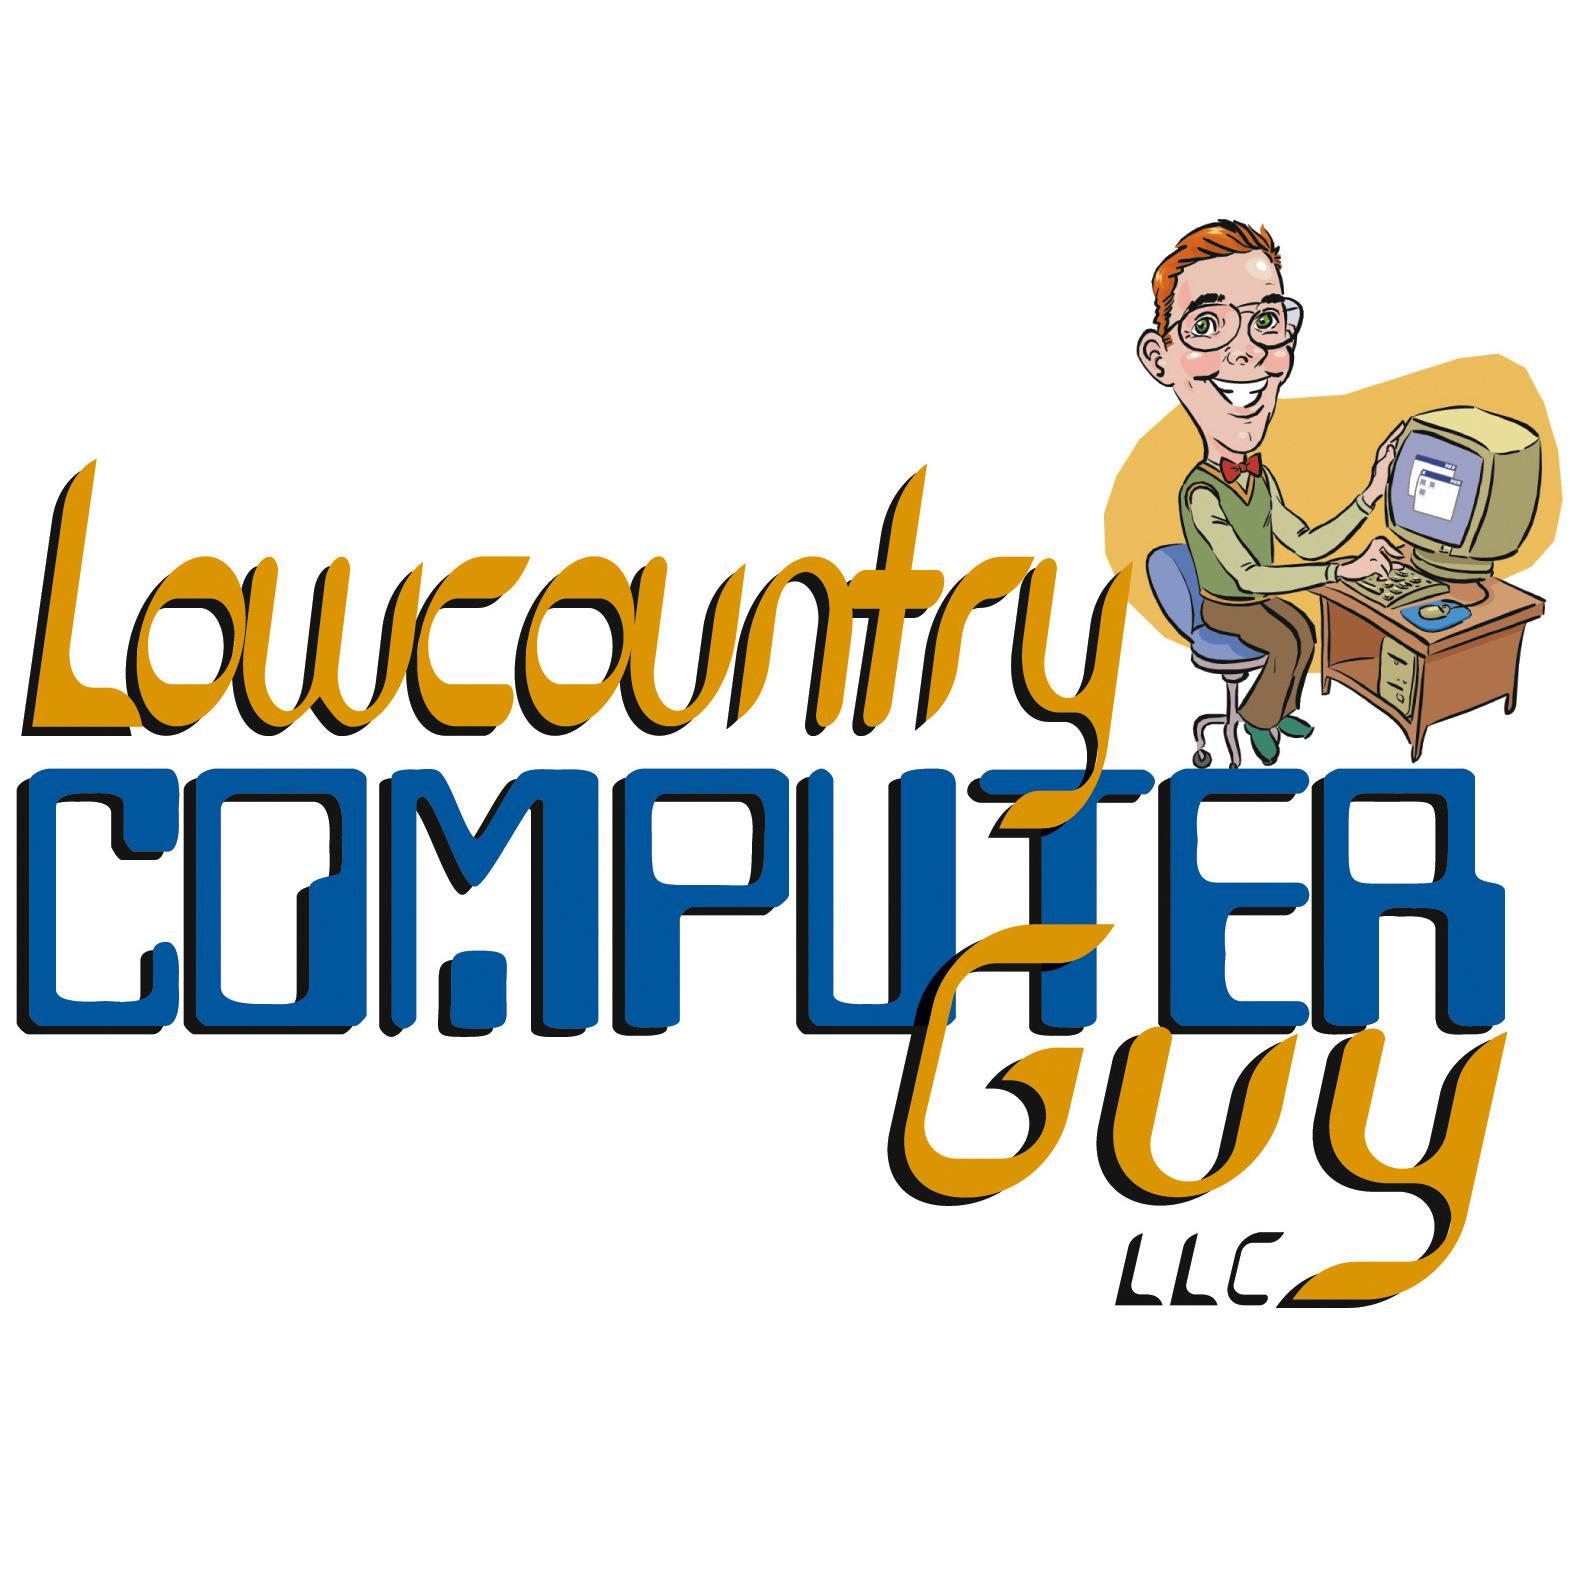 Lowcountry Computer Guy